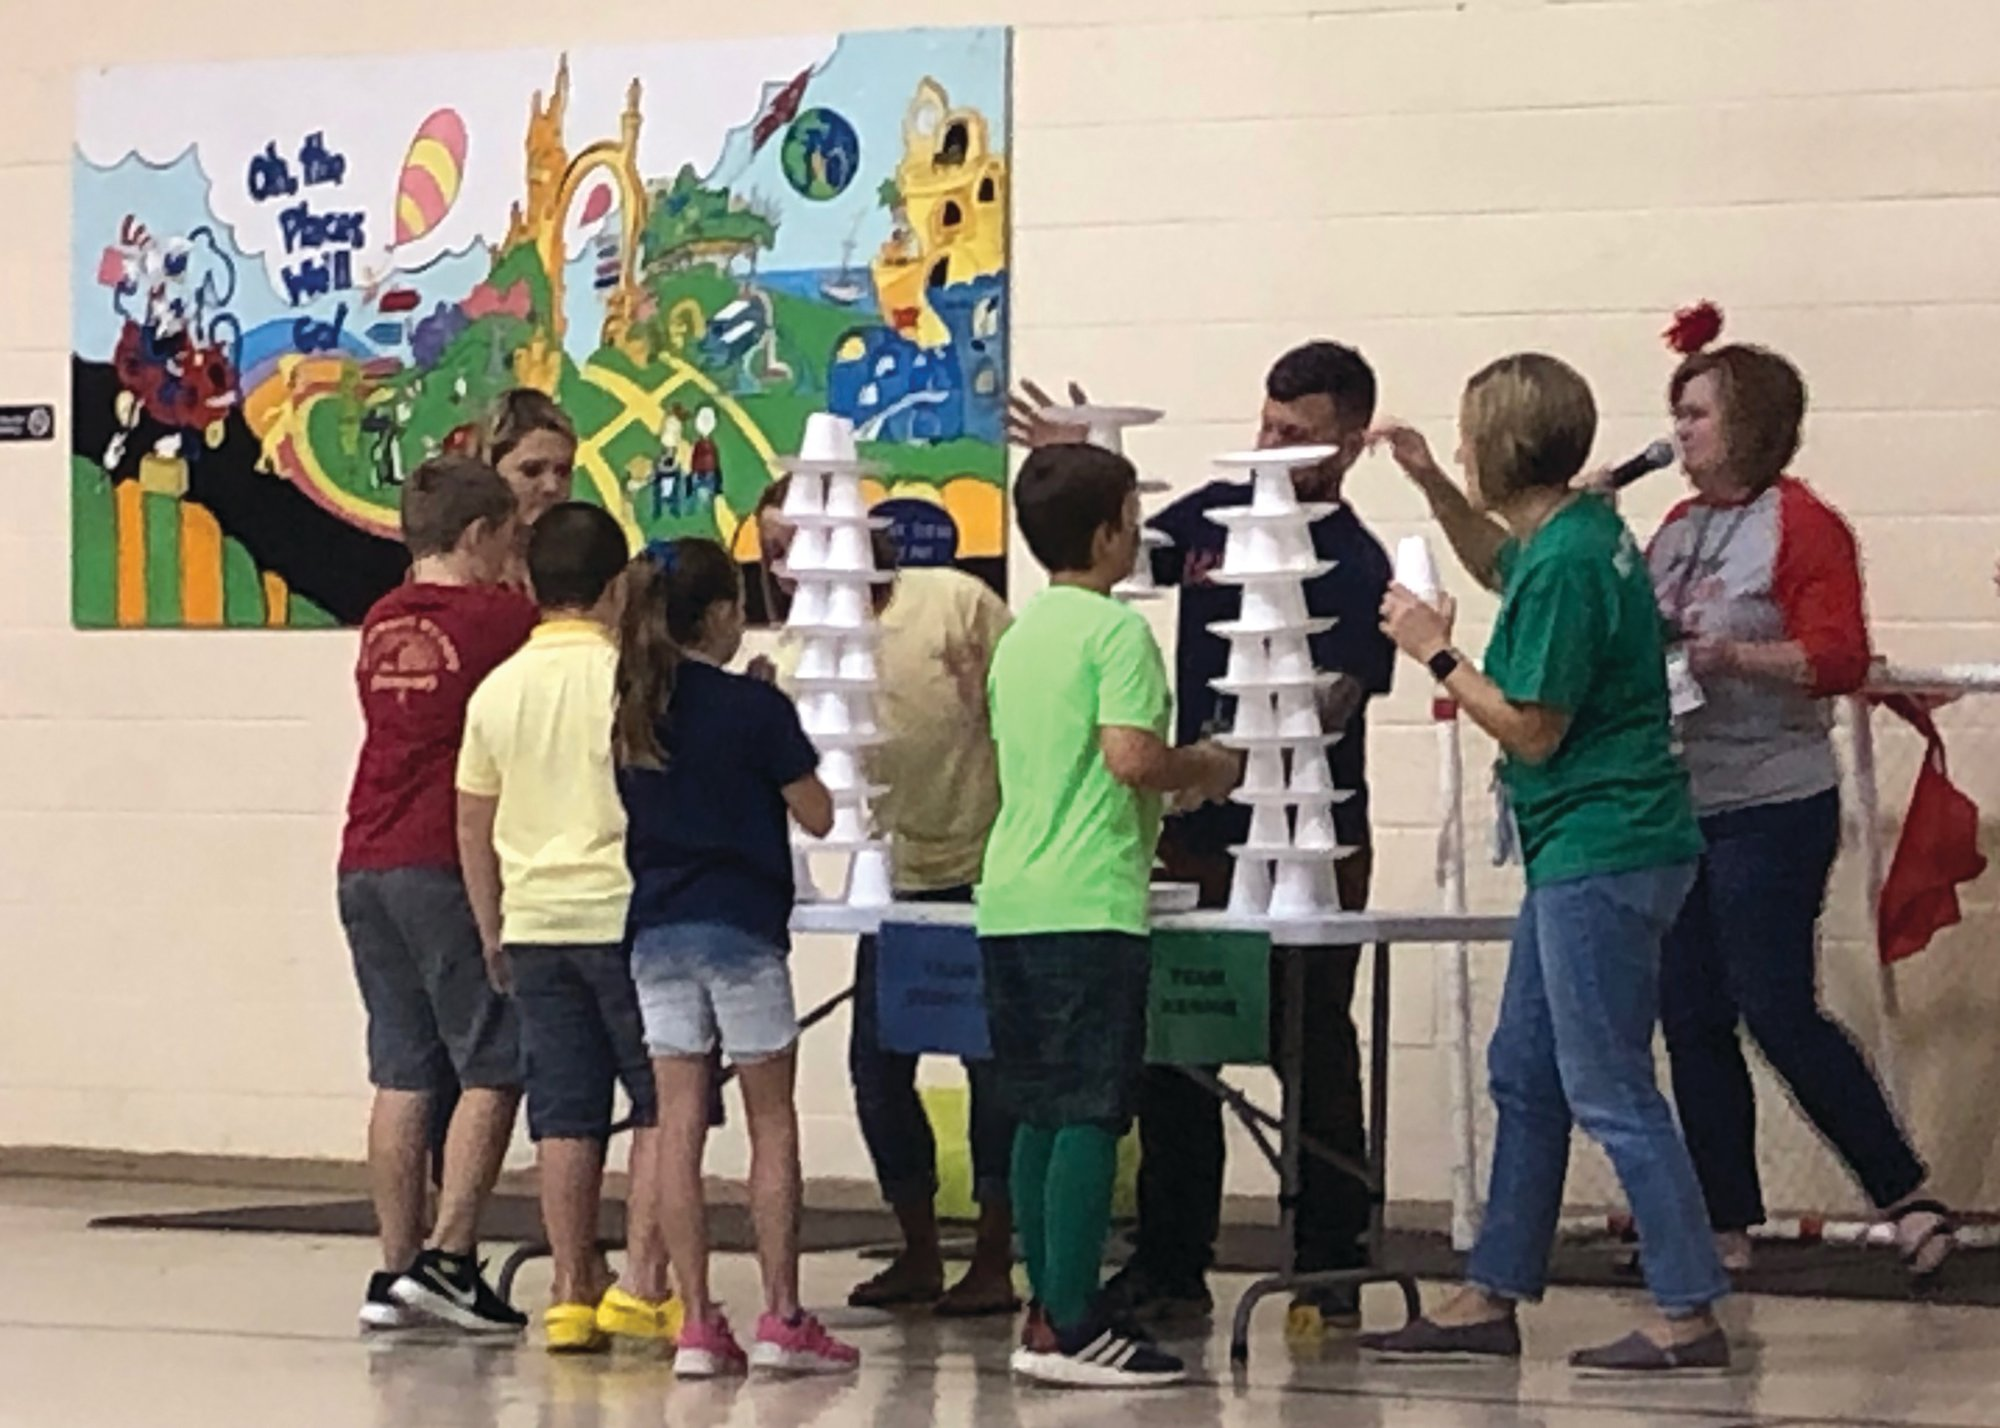 Students compete in building a structure from foam cups.